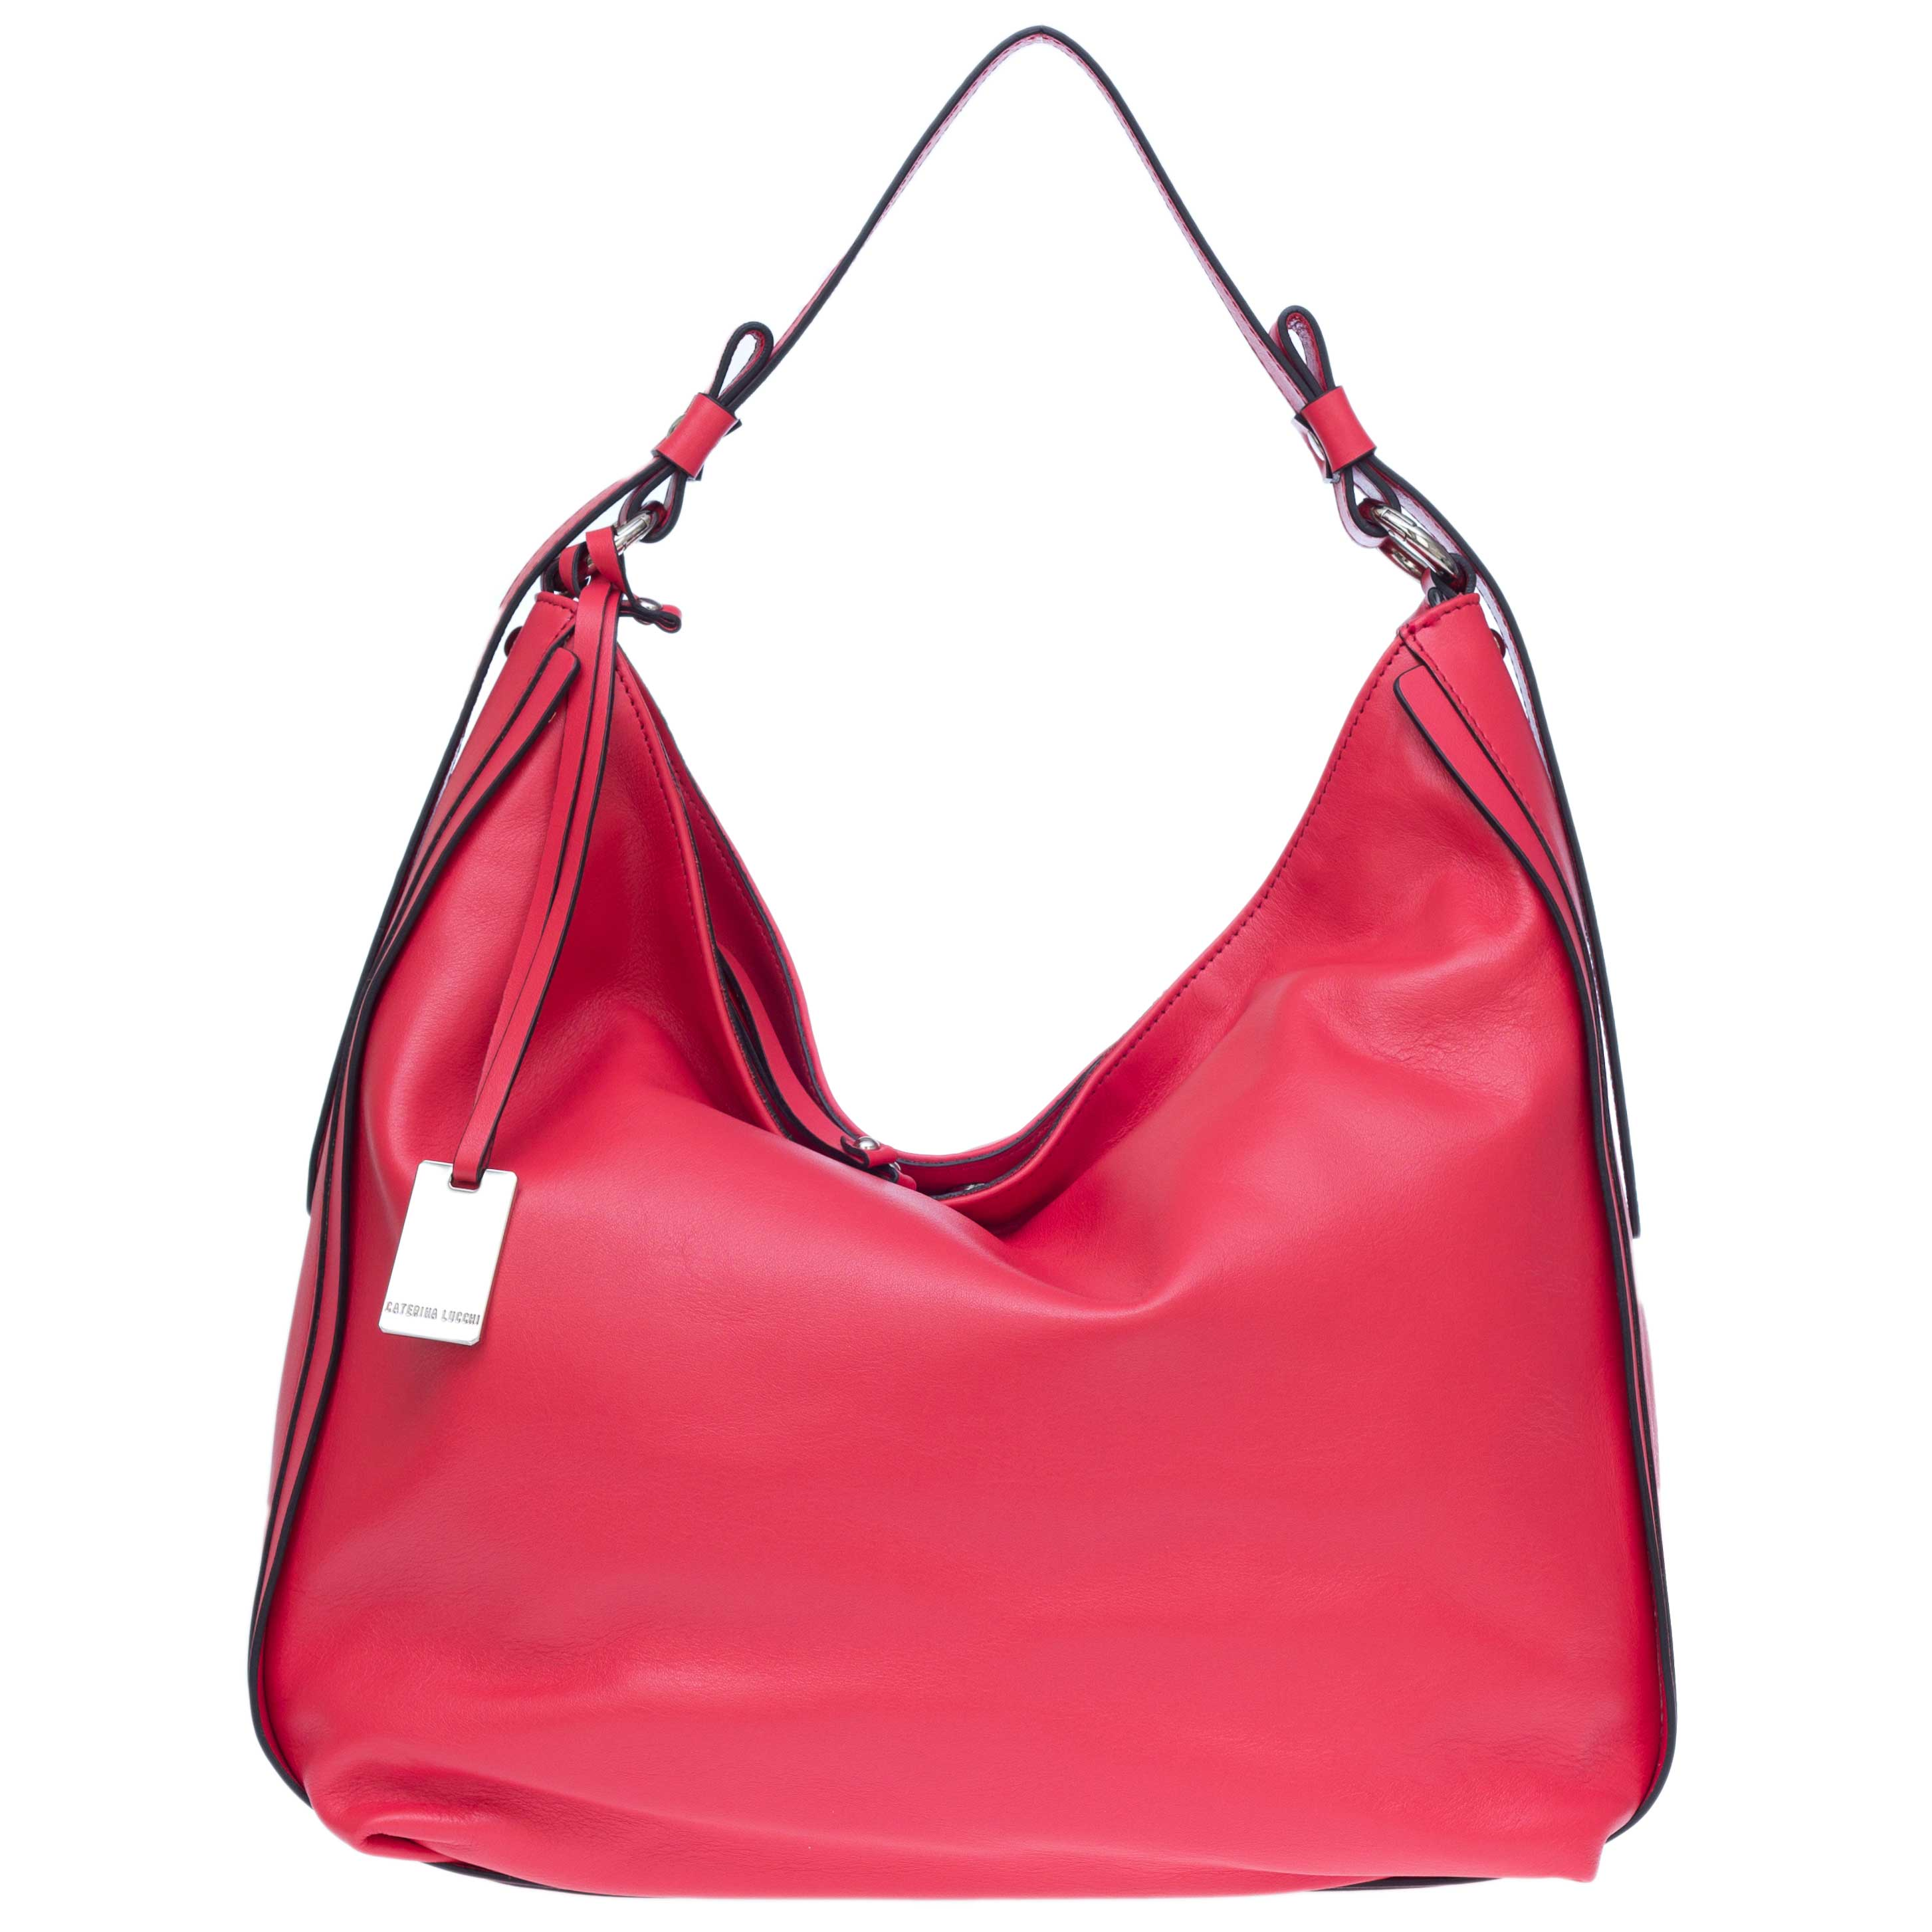 Caterina Lucchi Italian Made Red Leather Hobo Bag